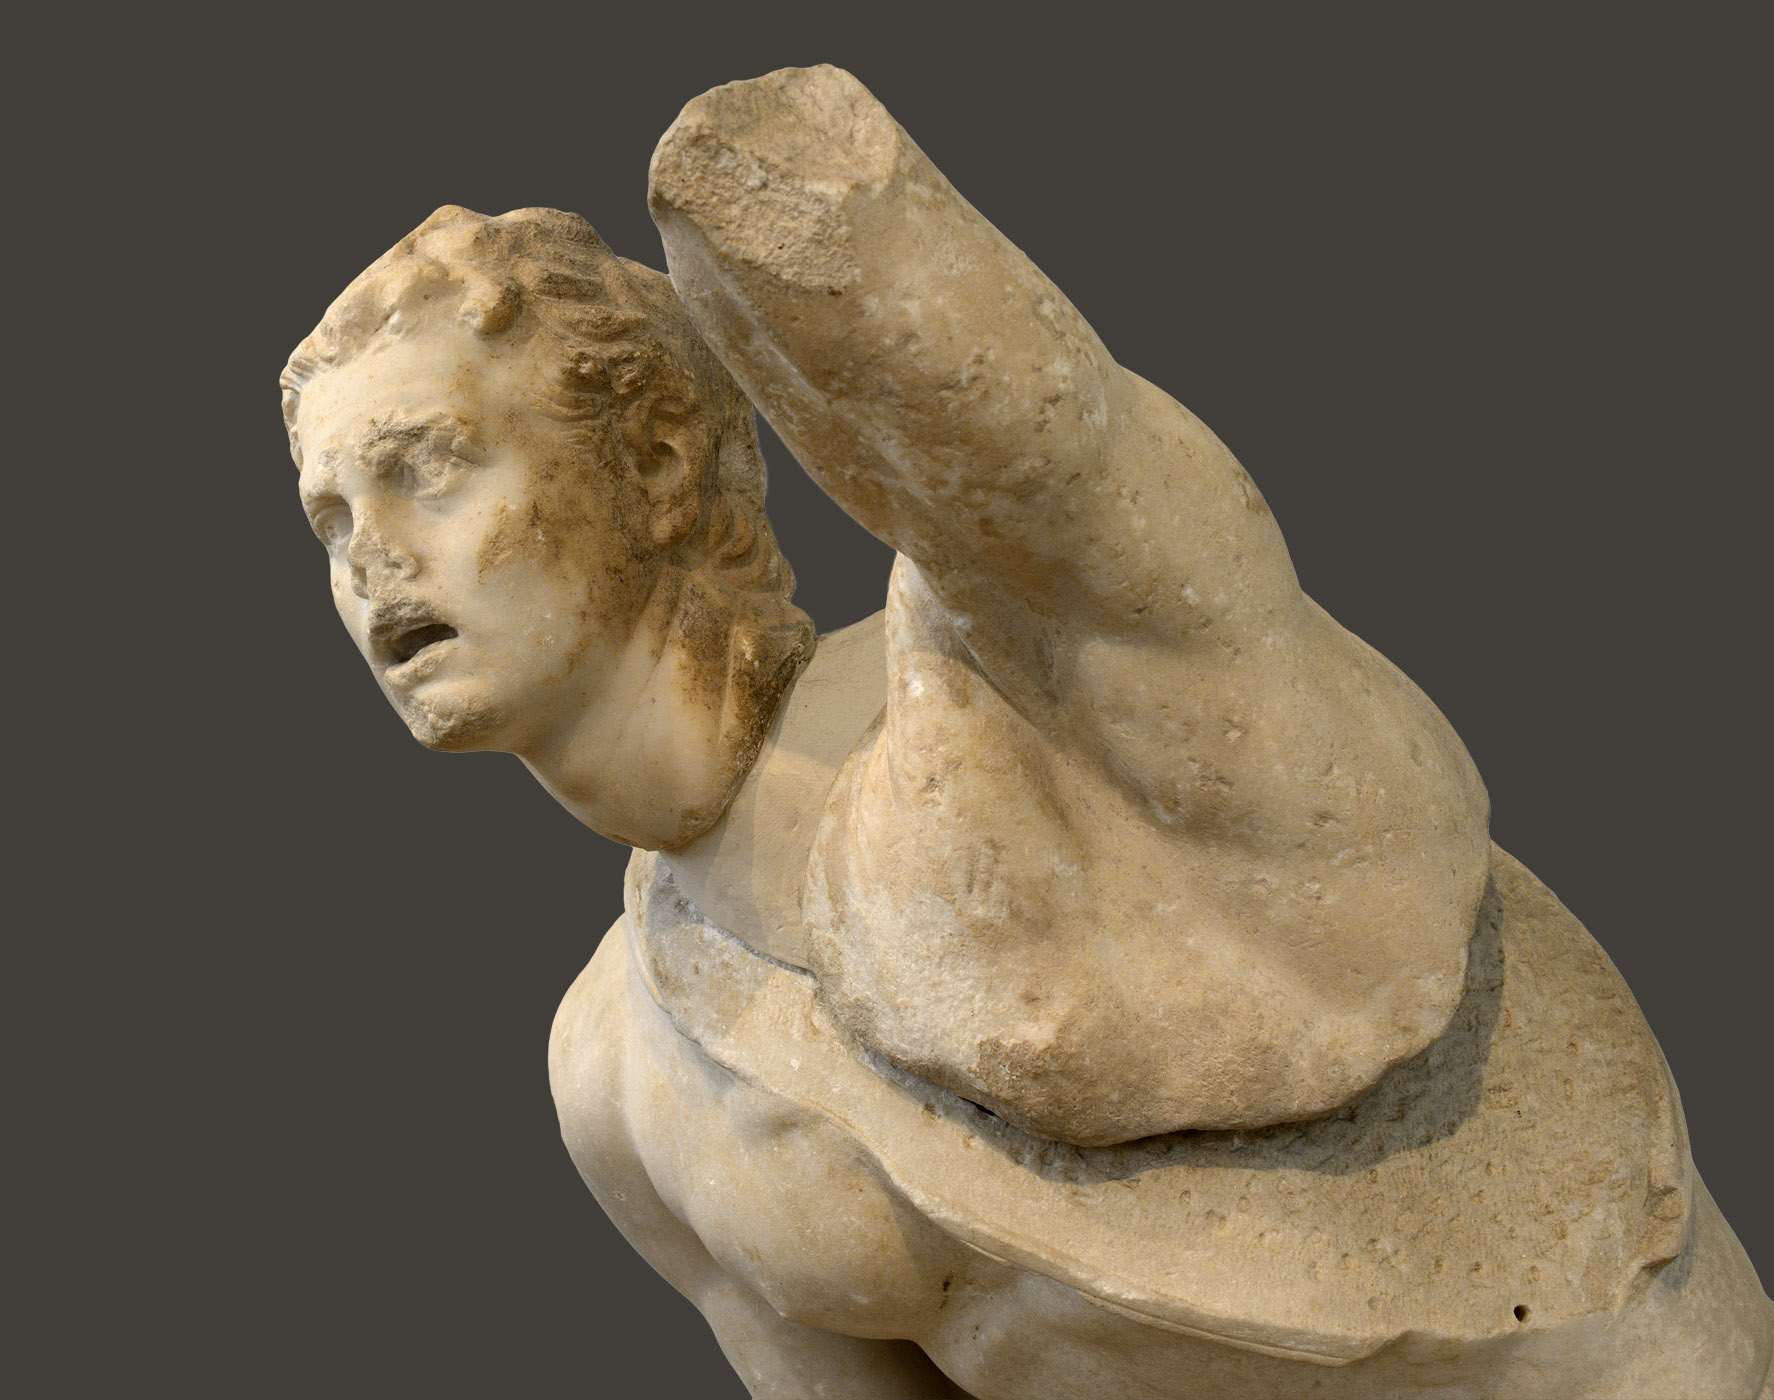 Fighting Gaul (close-up). Parian marble. Ca. 100 BCE. Inv. No. 247. Athens, National Archaeological Museum